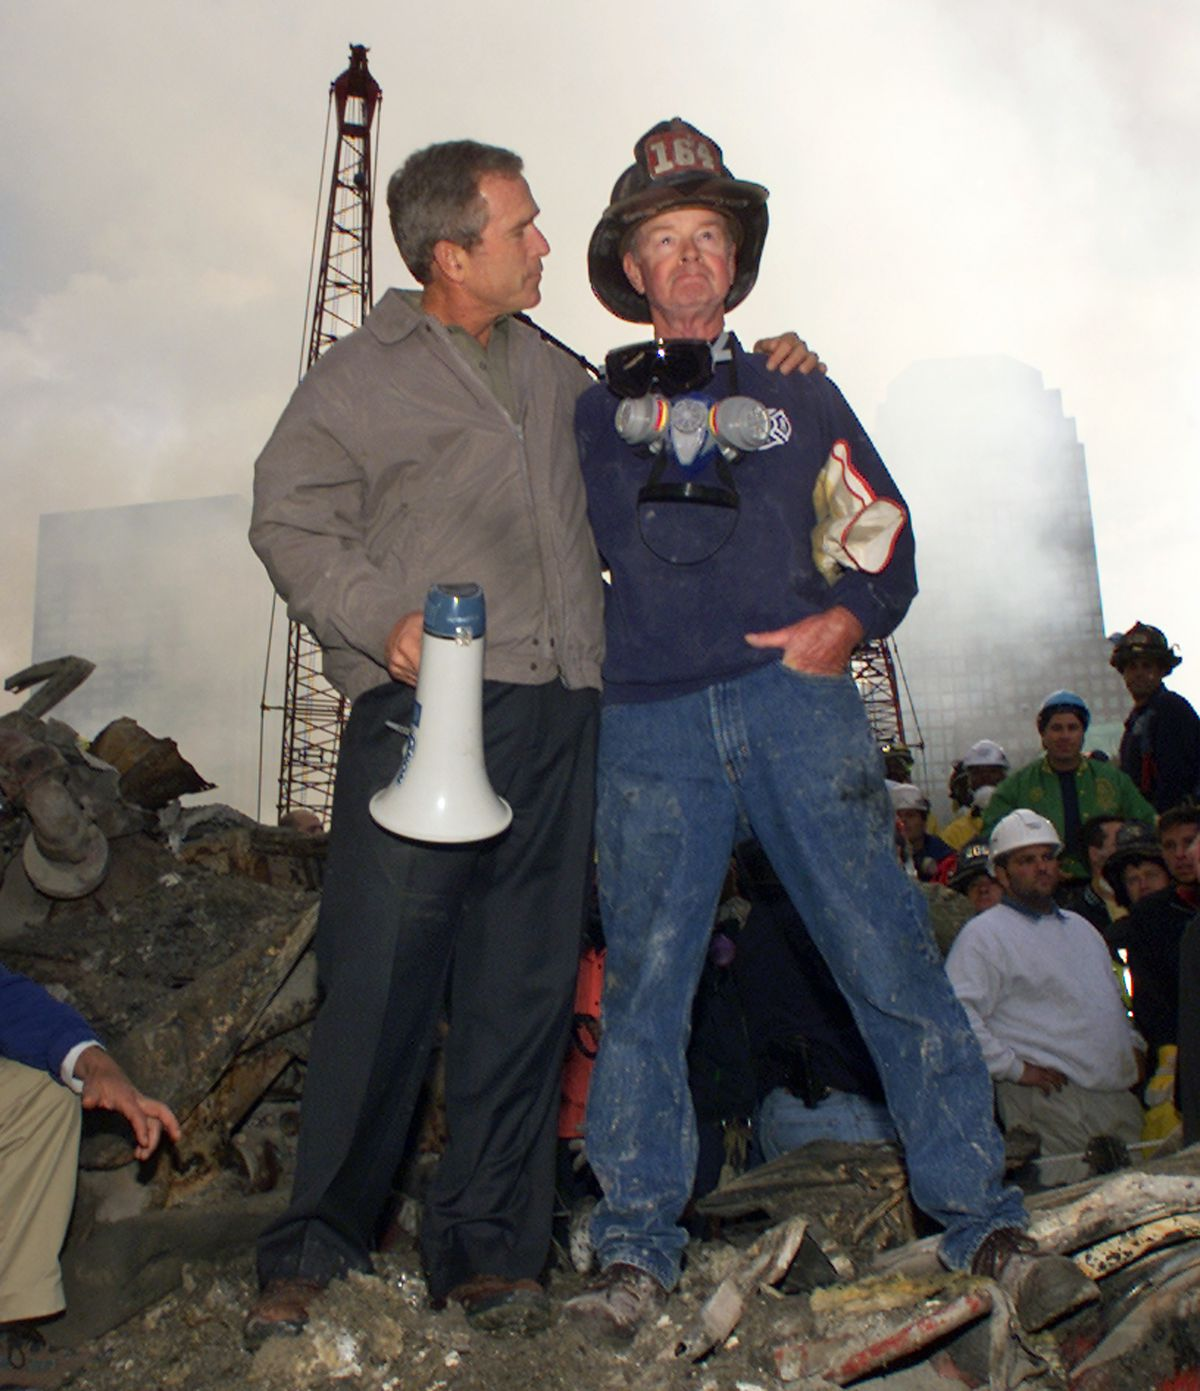 In this Sept. 14, 2001 file photo, President George W. Bush embraces firefighter Bob Beckwith while standing in front of the collapsed World Trade Center buildings in New York as rescue efforts continue.